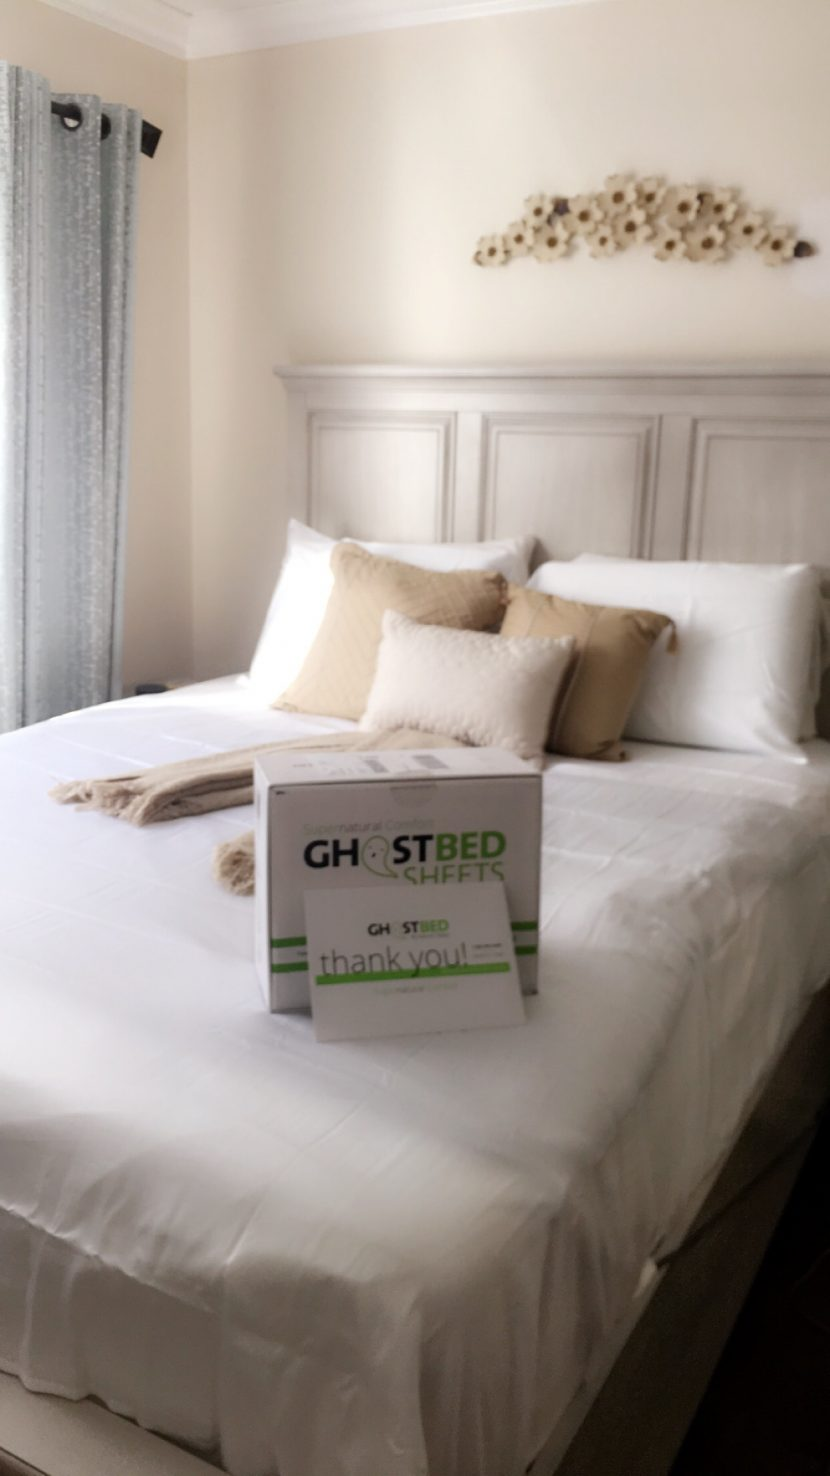 Nature's Sleep with Ghostbed bedsheets